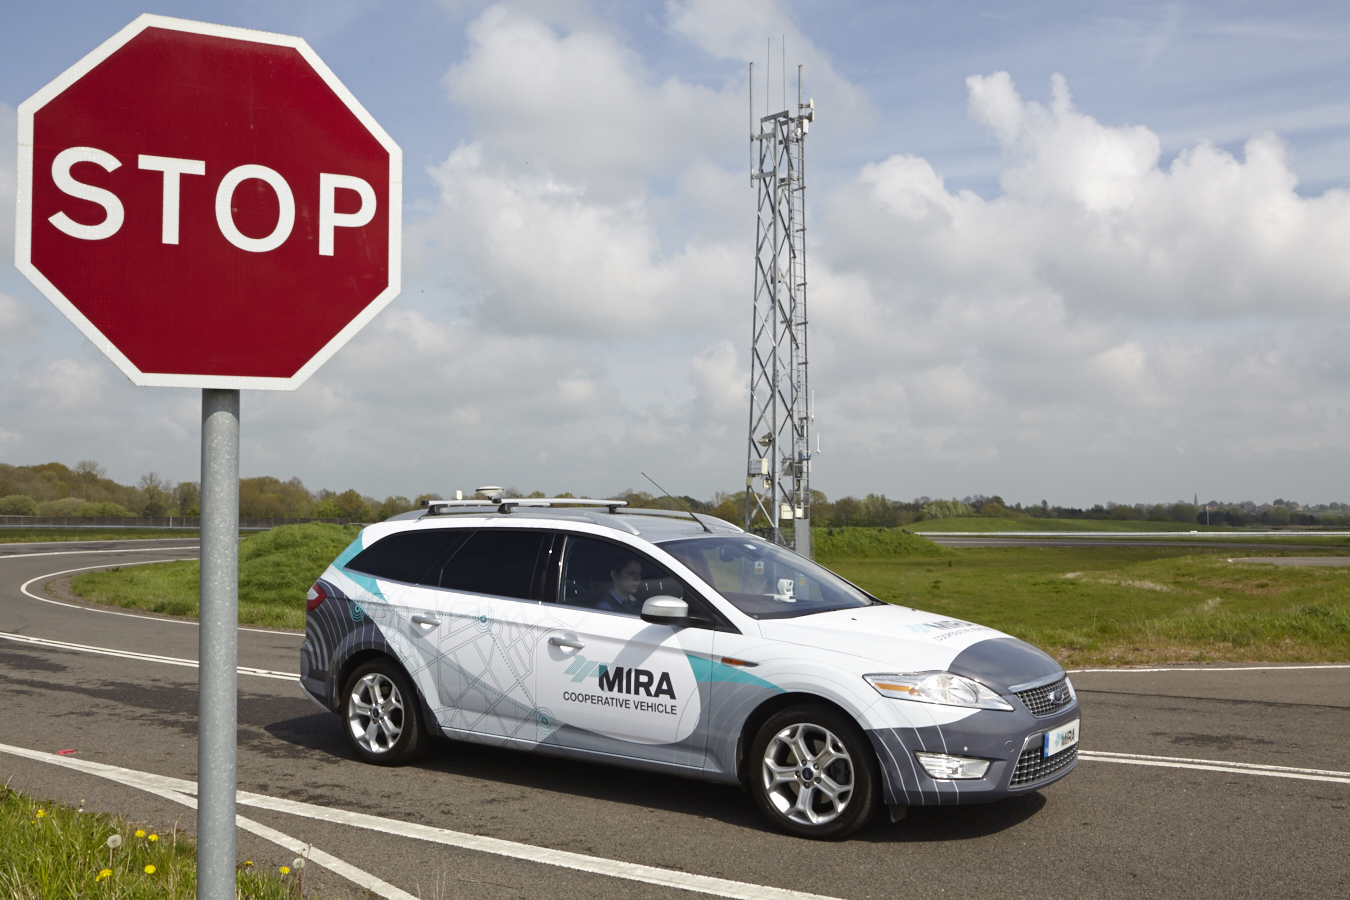 MIRA test car and stop sign